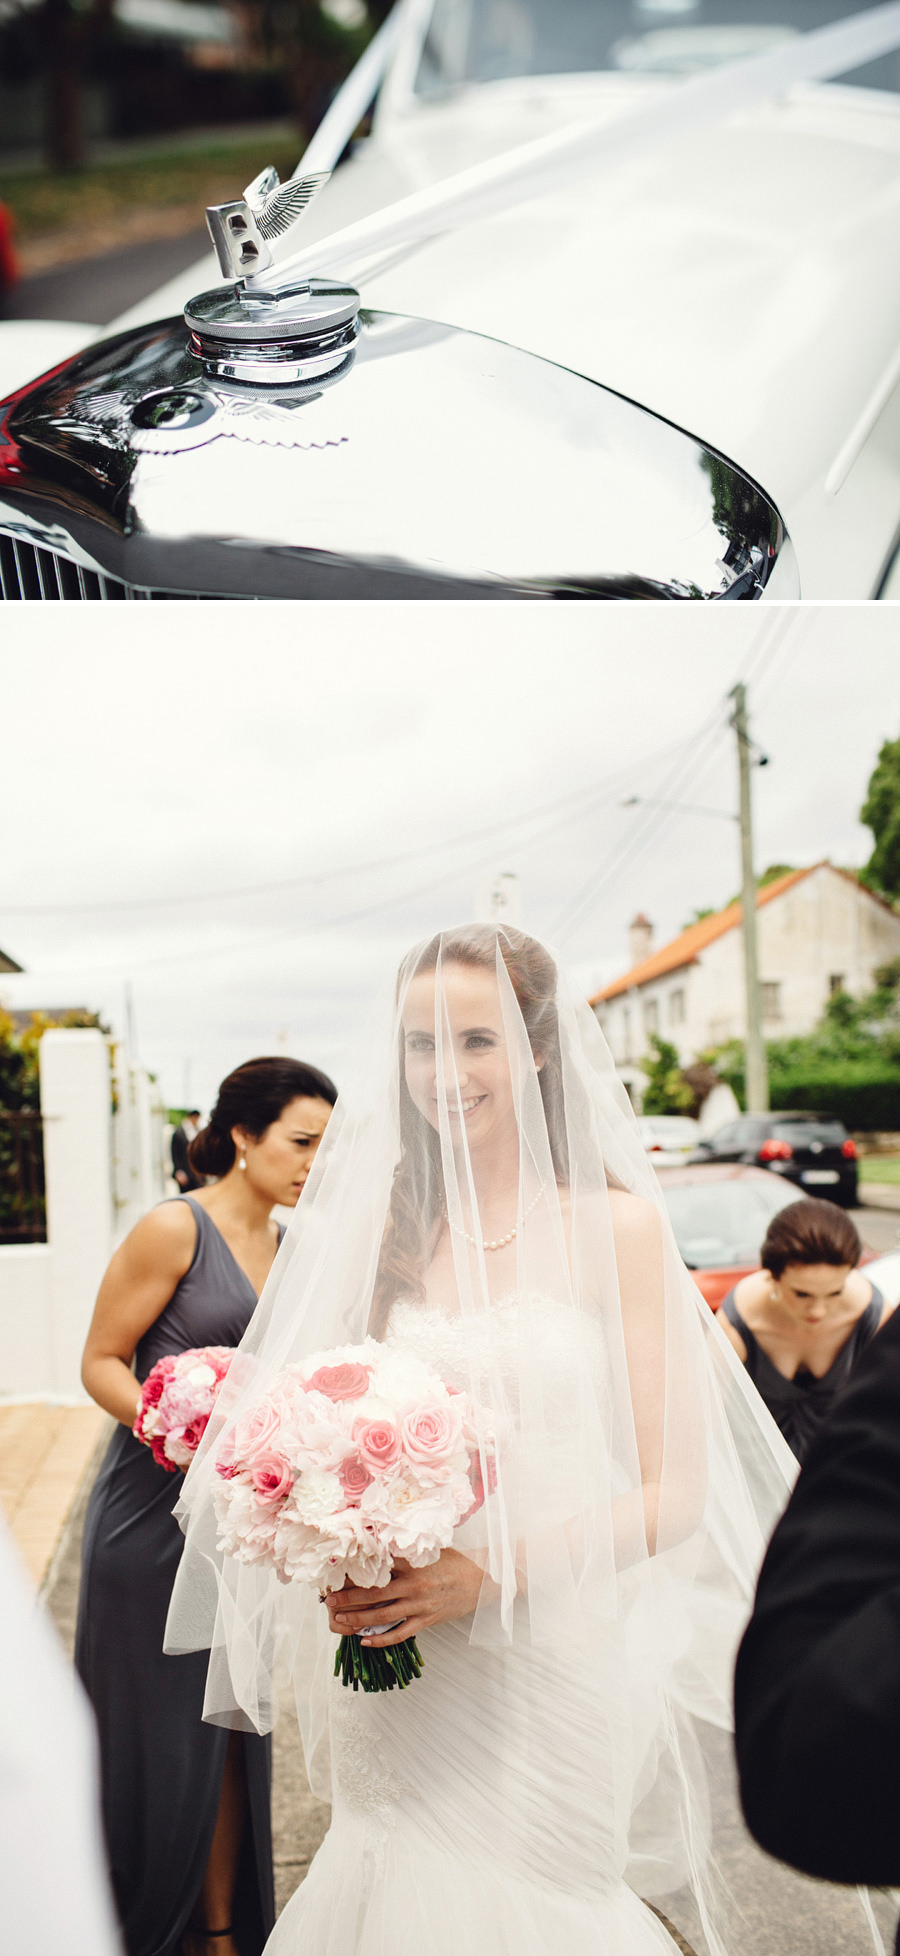 Edgecliff Wedding Photographers: Ceremony